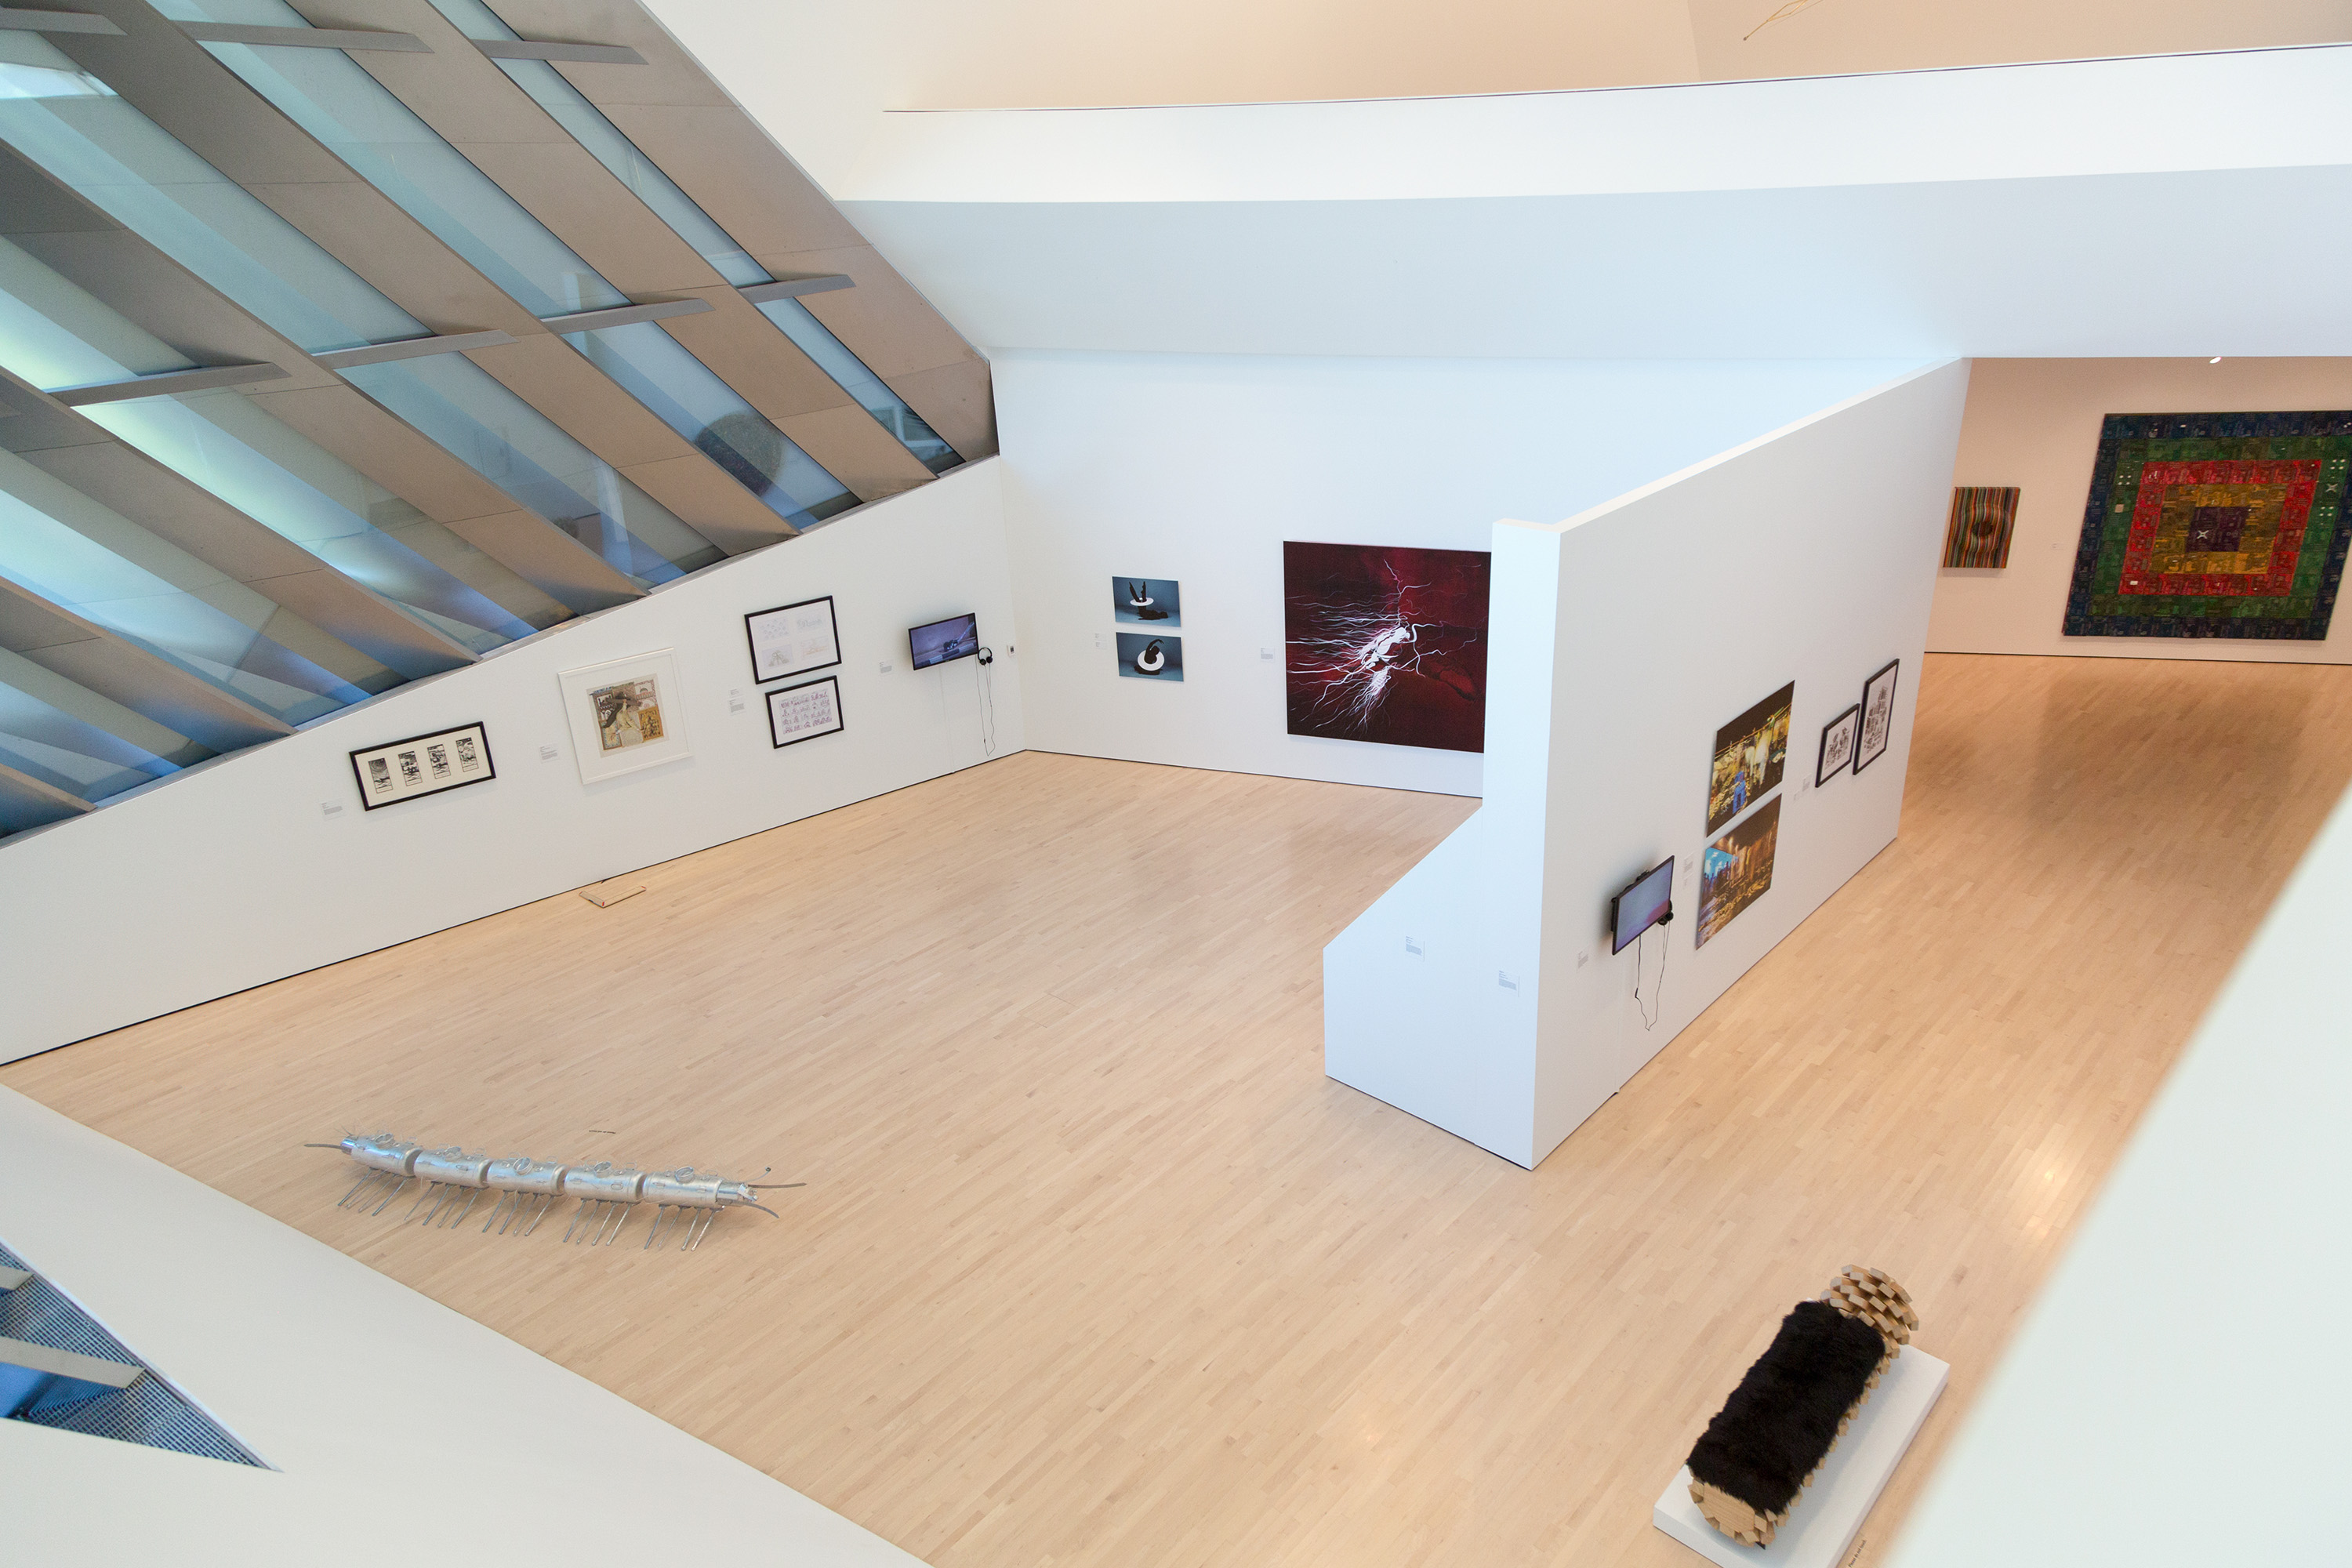 <i>Past Forward: Contemporary Art from the Emirates</i>, installation view at the Eli and Edythe Broad Art Museum at Michigan State University, 2015. Photo: MSU Broad